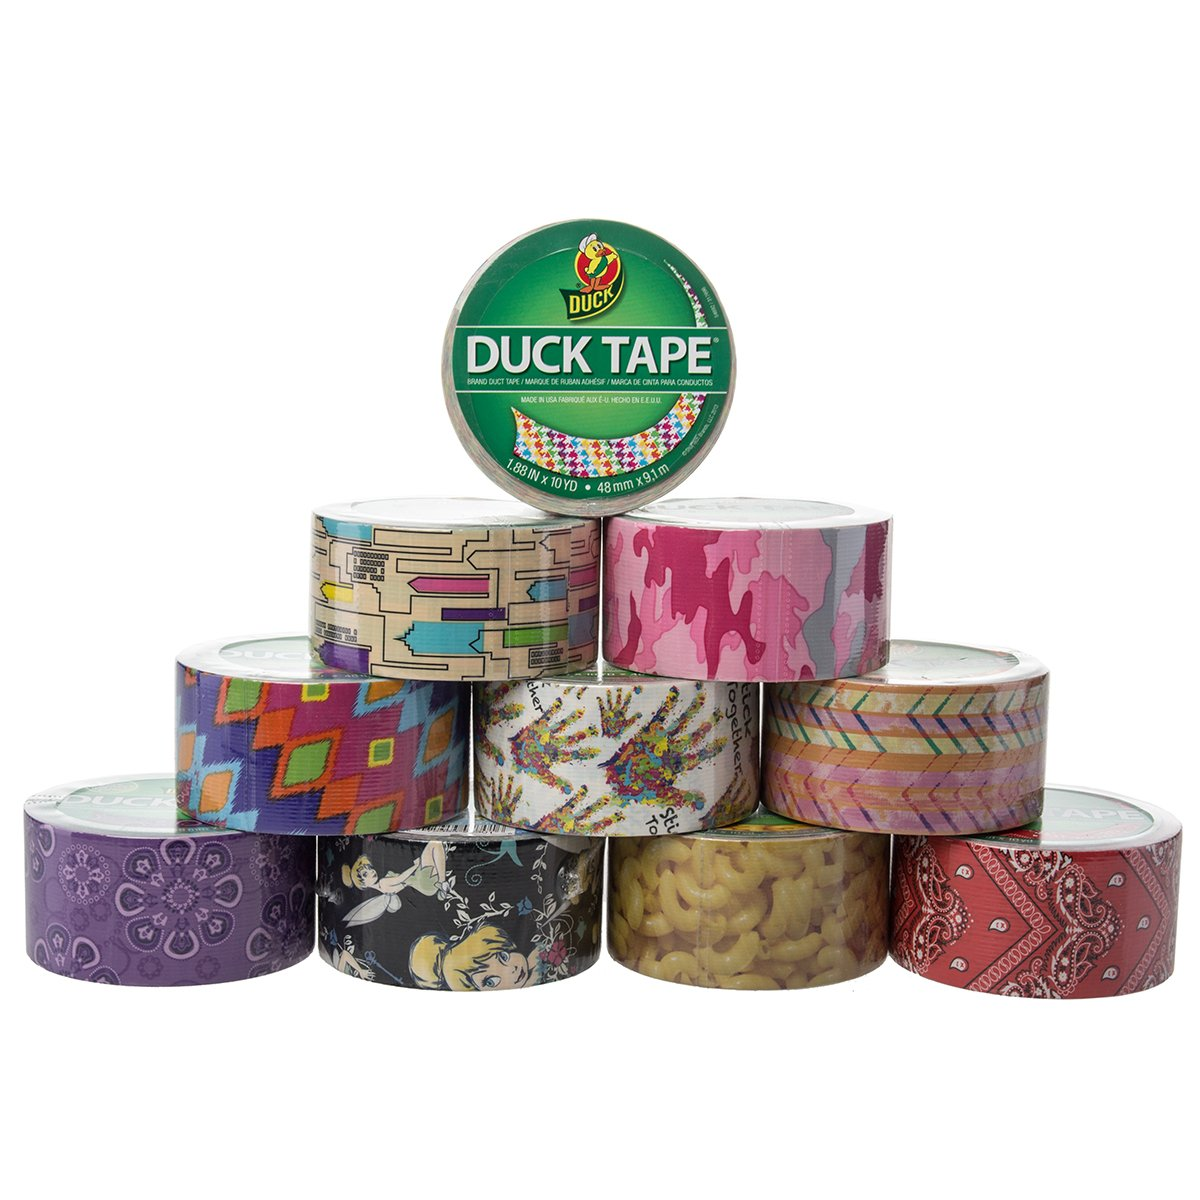 10 Rolls Printed Duck Brand Duct Tape Patterns Arts & Crafts Projects DIY 100yds